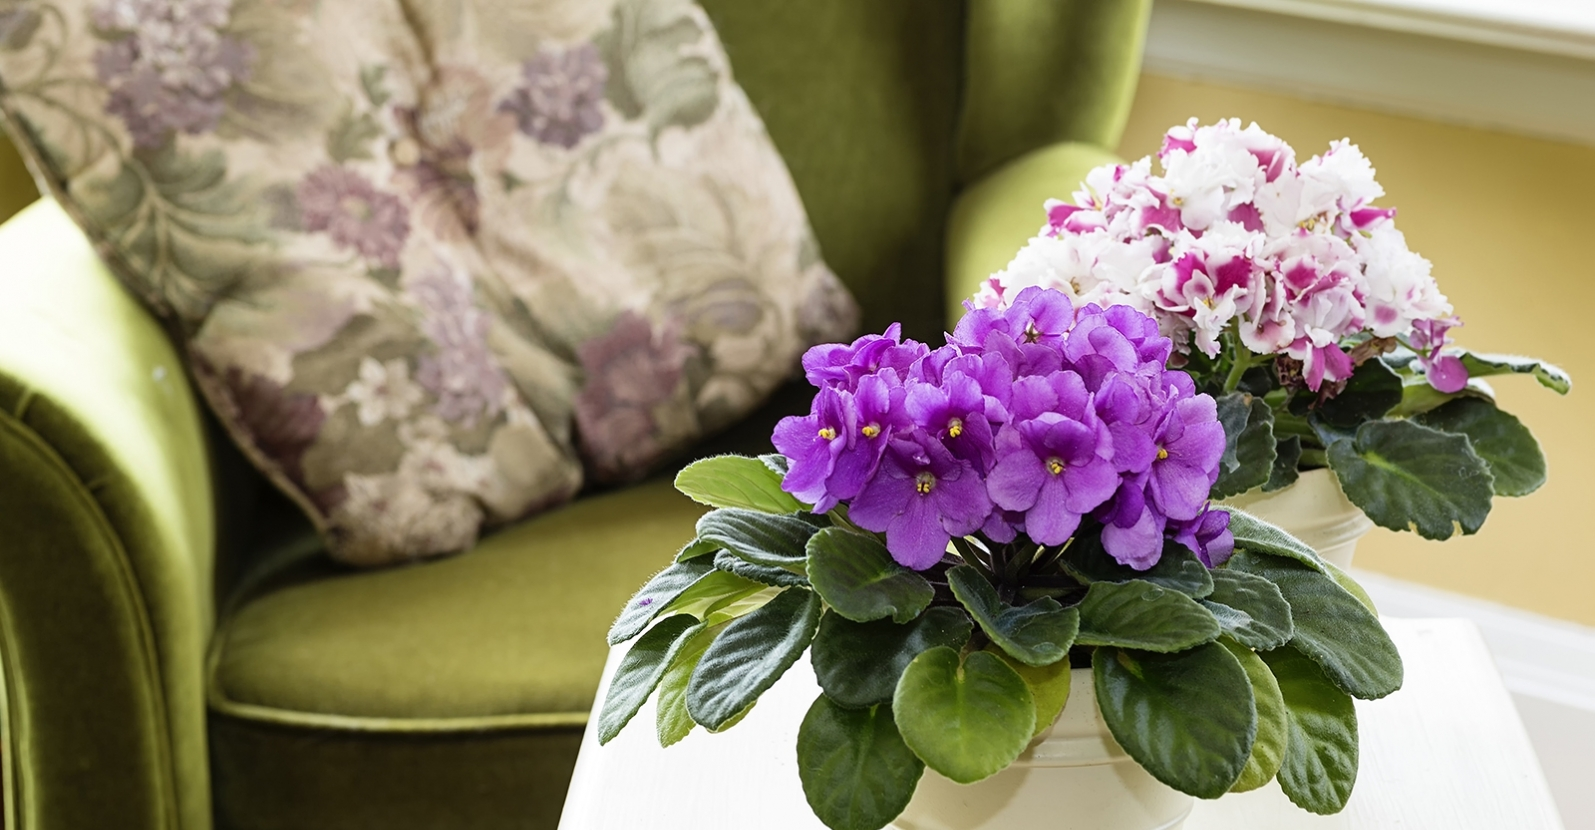 10 Tips Caring For Flowering Indoor Plants My Garden Life